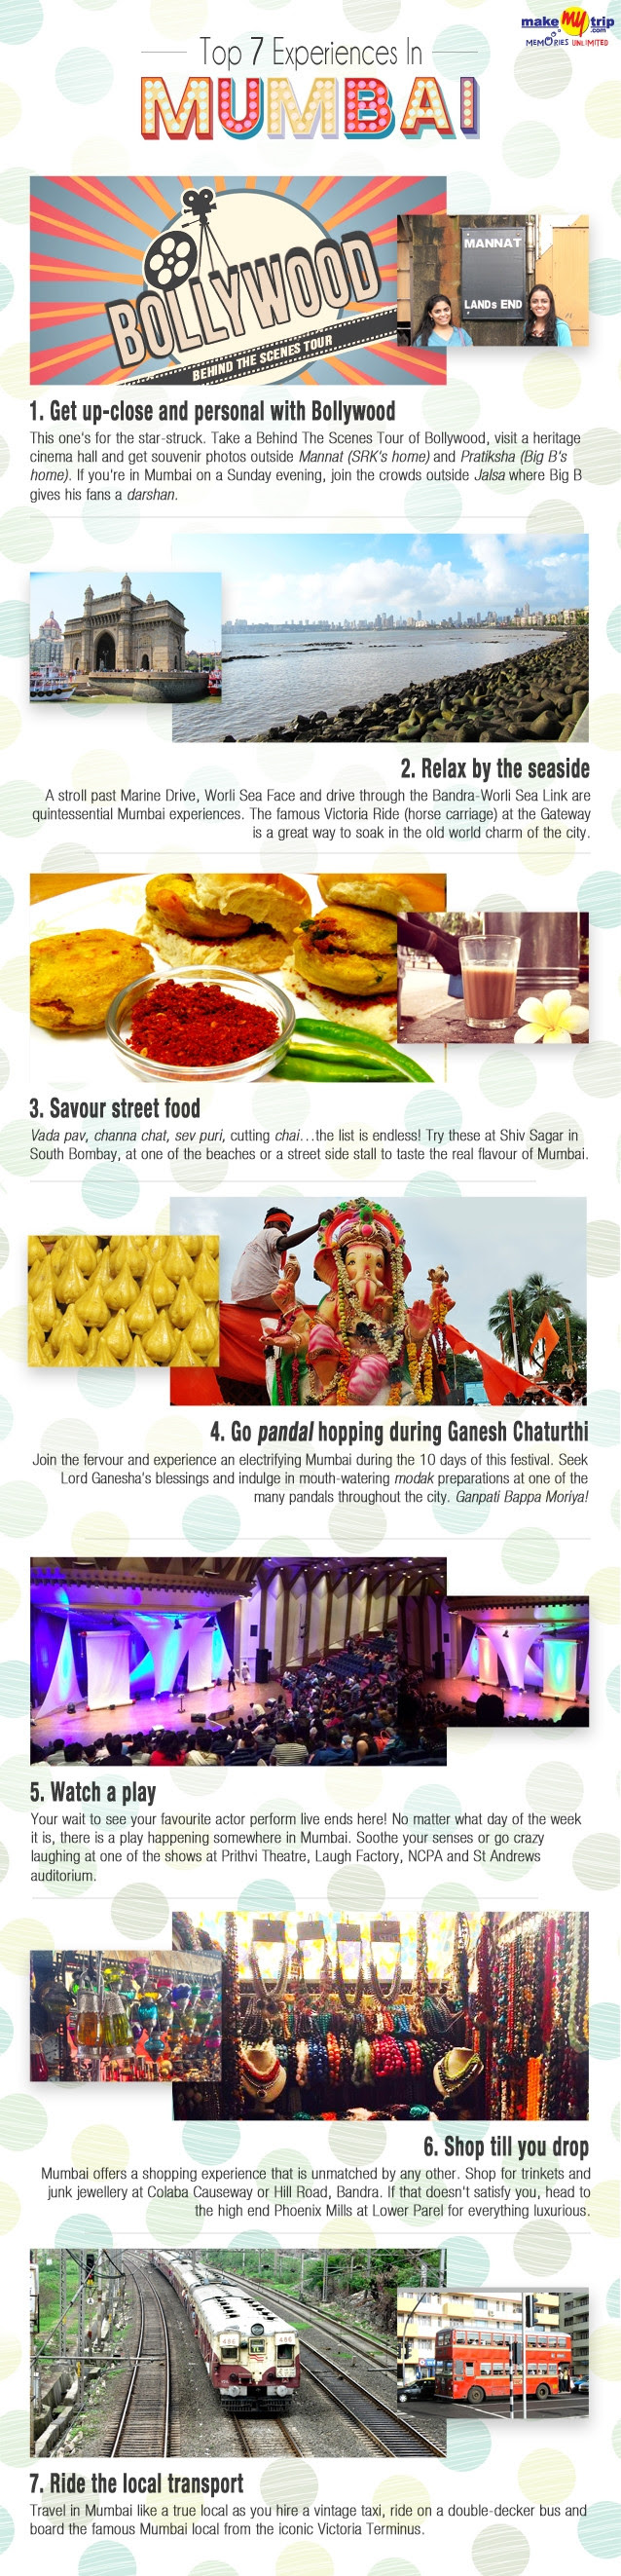 Infographic: Top 7 Experiences In Mumbai #infographic